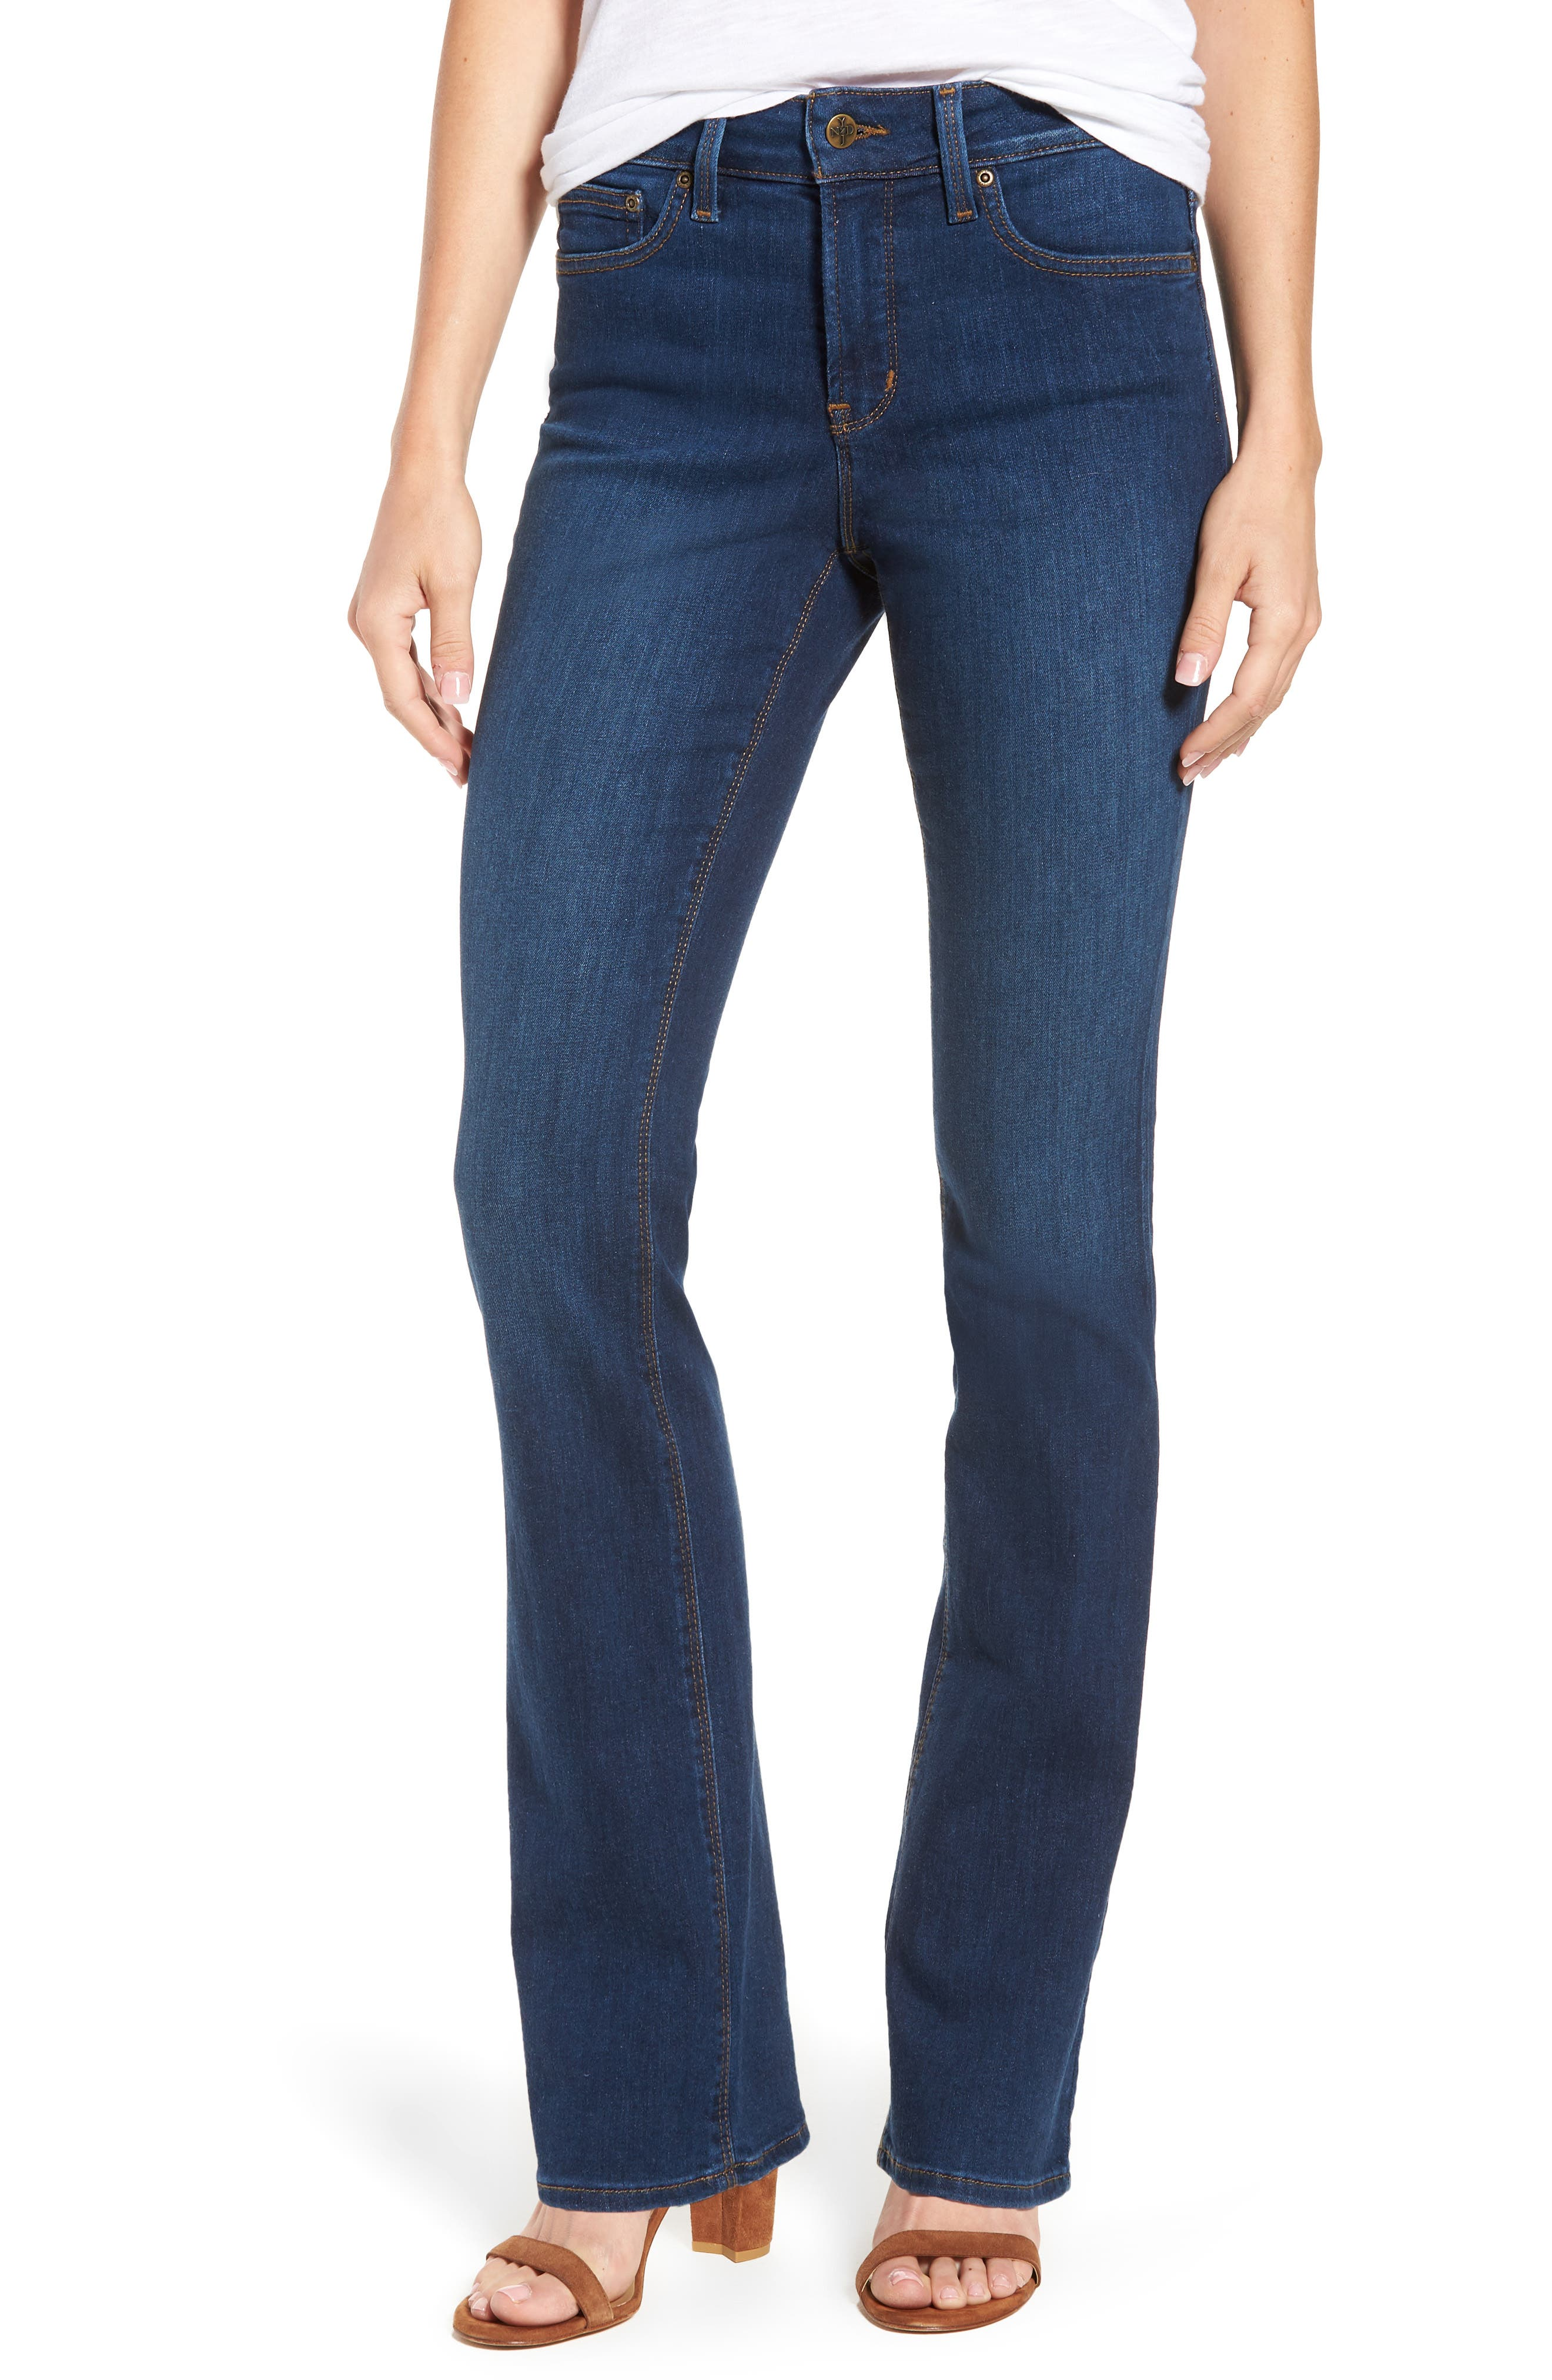 Billie Mini Bootcut Jeans,                             Main thumbnail 1, color,                             Cooper